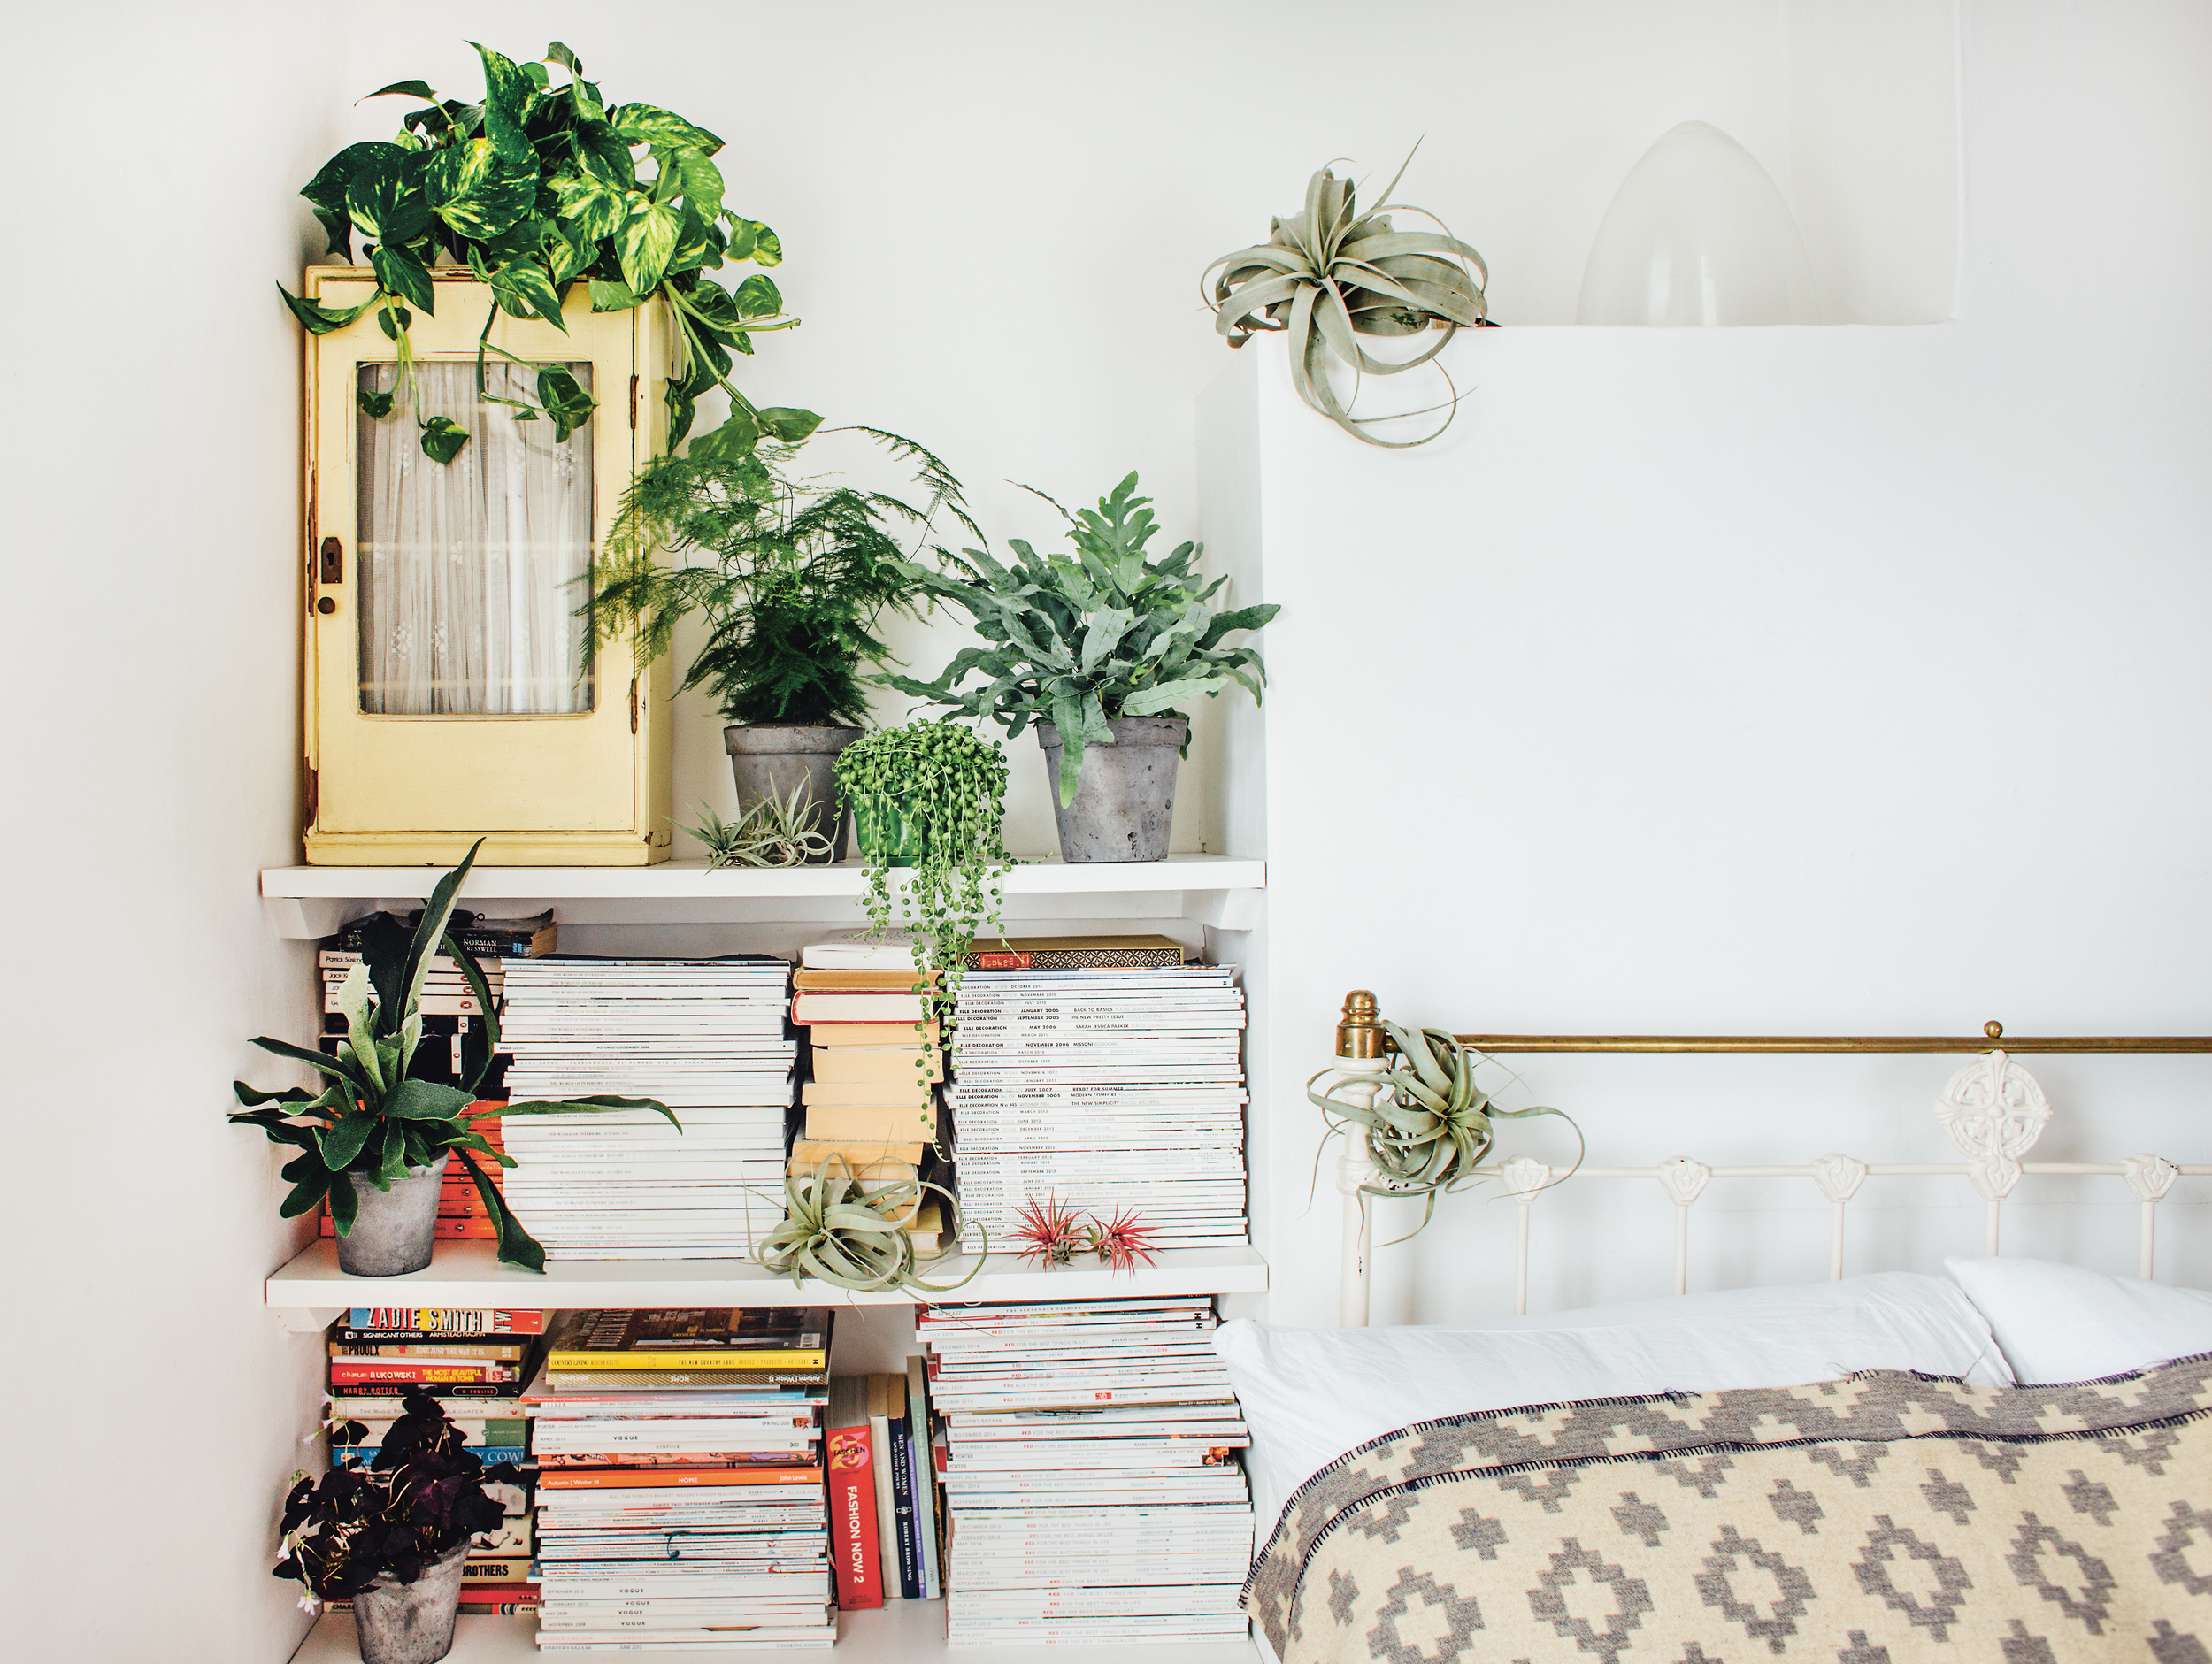 Cool Plants For Your Room Why Indoor Plants Make You Feel Better